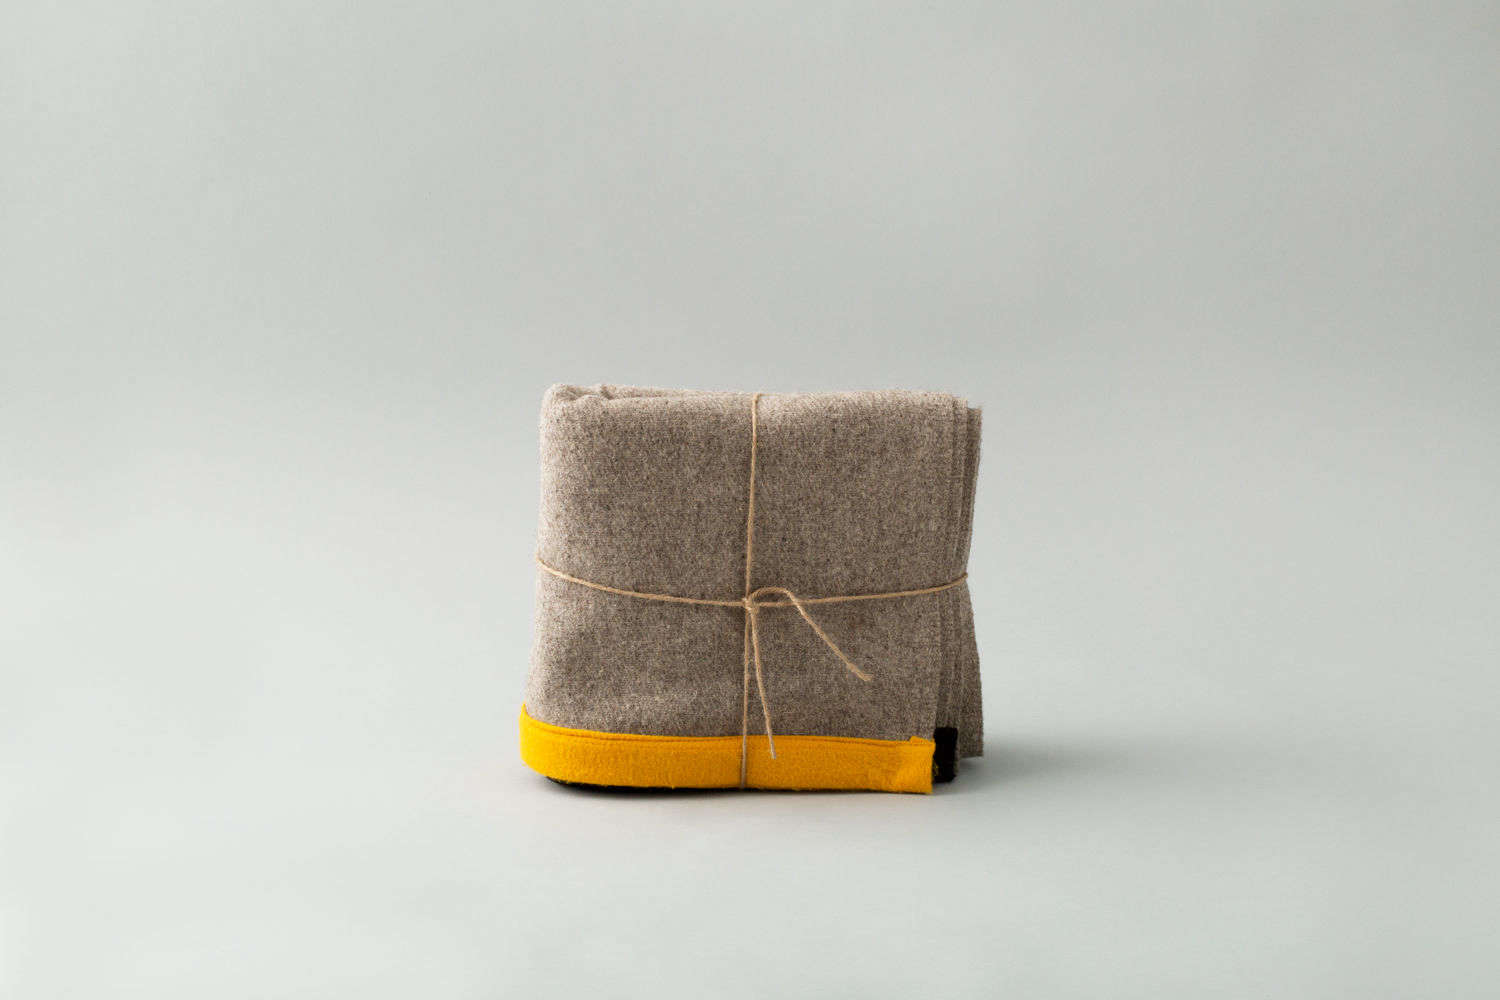 The Lagos del Mundo Throw is made of gray wool with a yellow border.